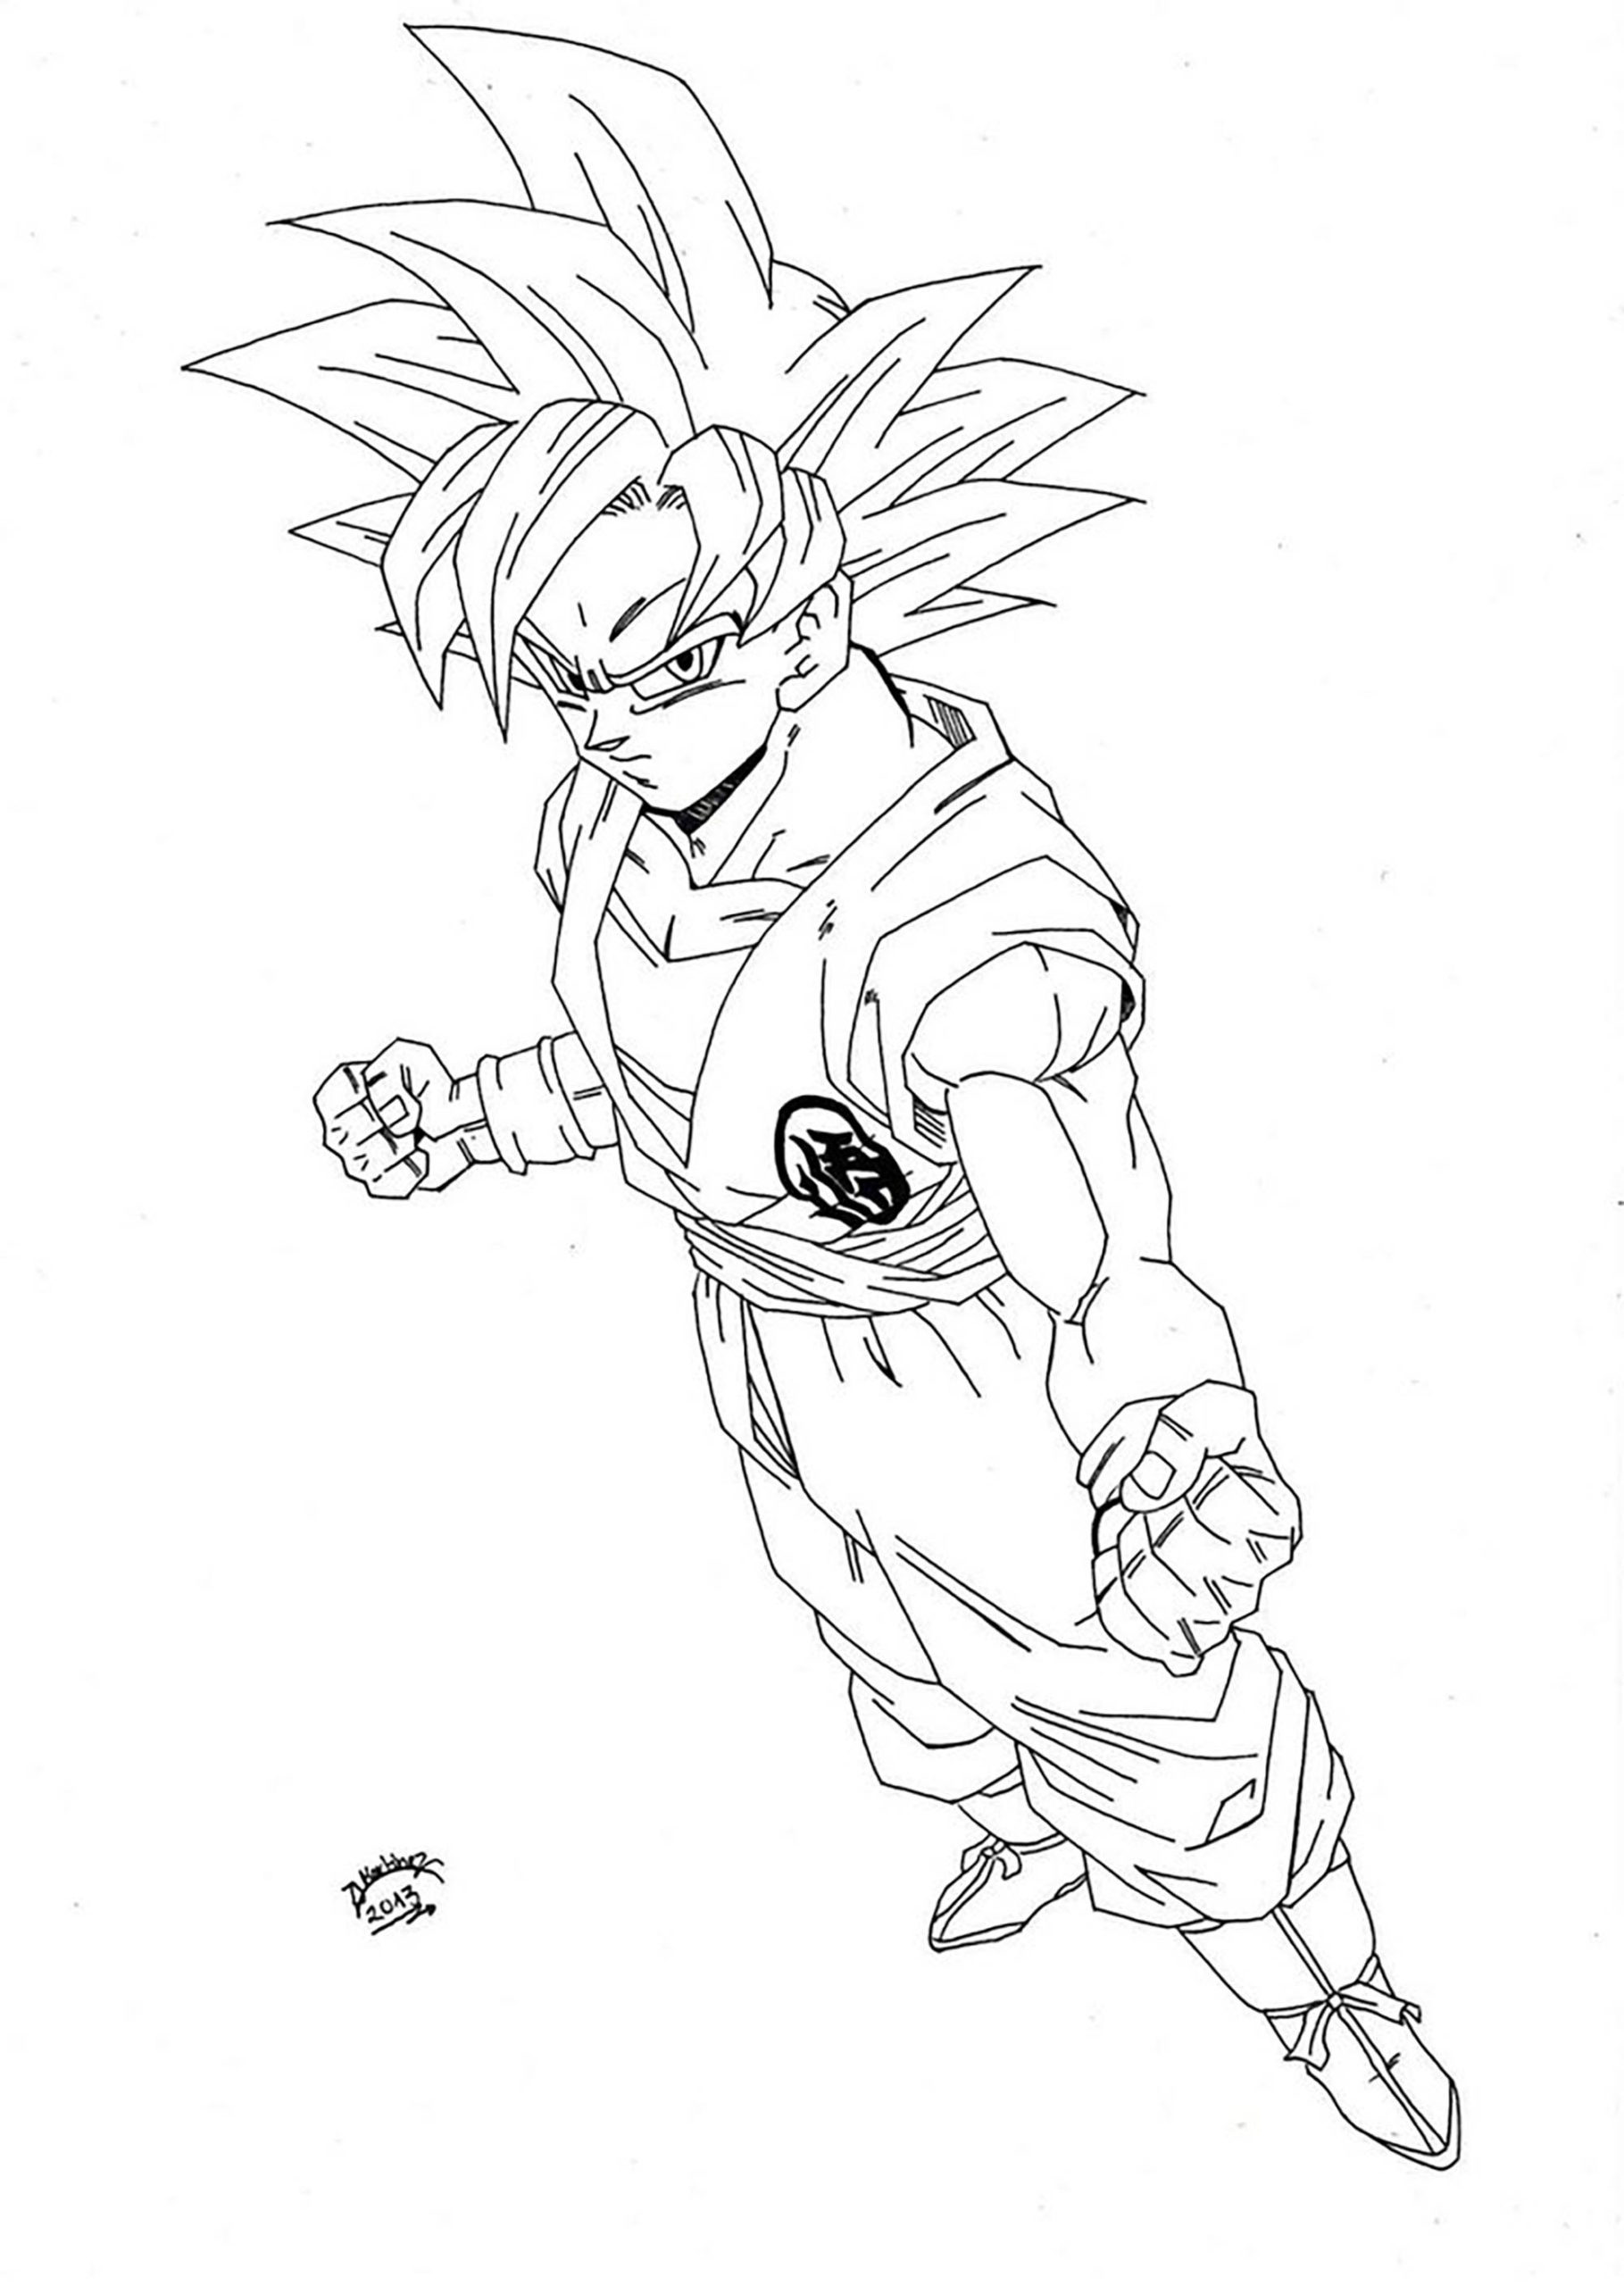 Haut Coloriage Dragon Ball Super 22 Avec supplémentaire Coloriage Books for Coloriage Dragon Ball Super